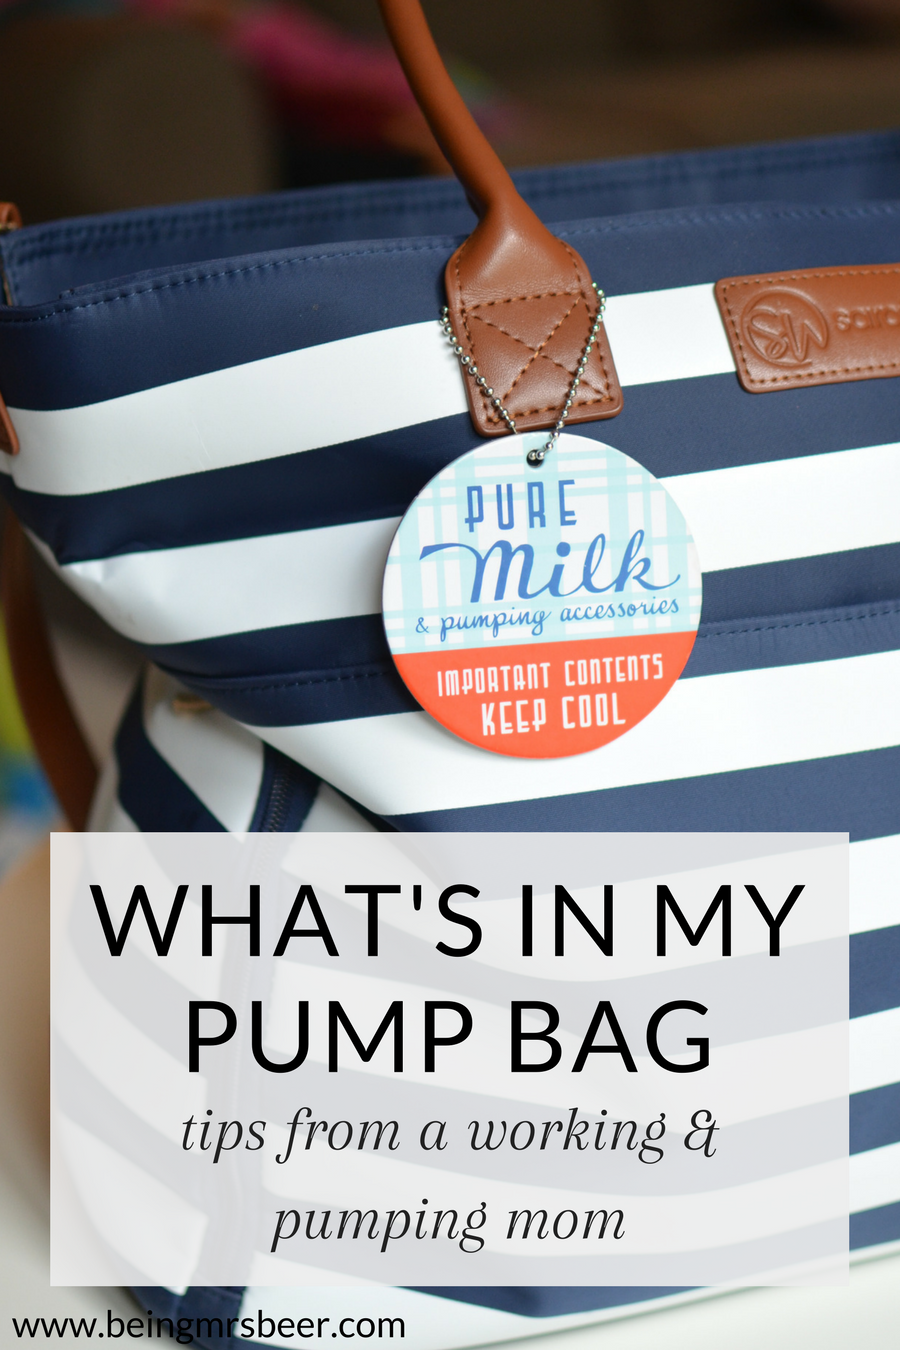 Confused about what to pack in your pump bag as you head back to work? Check out this list of what's in my pump bag!